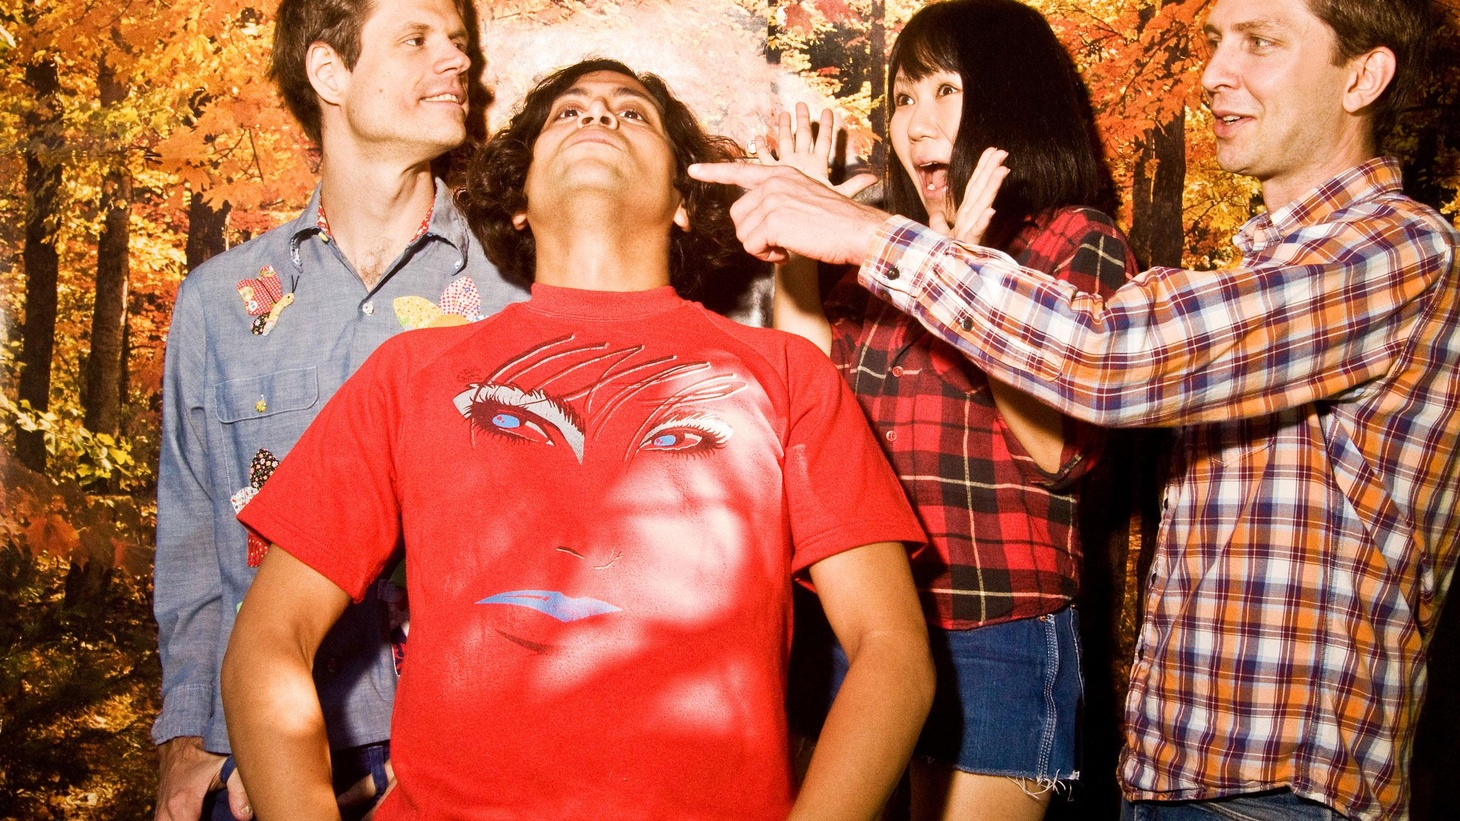 """Deerhoof haven't abandoned their avant garde nature with their success. They still love to push the boundaries of pop and their quirkiness is alive and well in new songs that were premiered on KCRW by none other than DJ Henry Rollins, who's one of their biggest fans. A highlight off their tenth full length, Deerhoof vs. Evil, is Today's Top Tune. It's """"Secret Mobilization."""""""